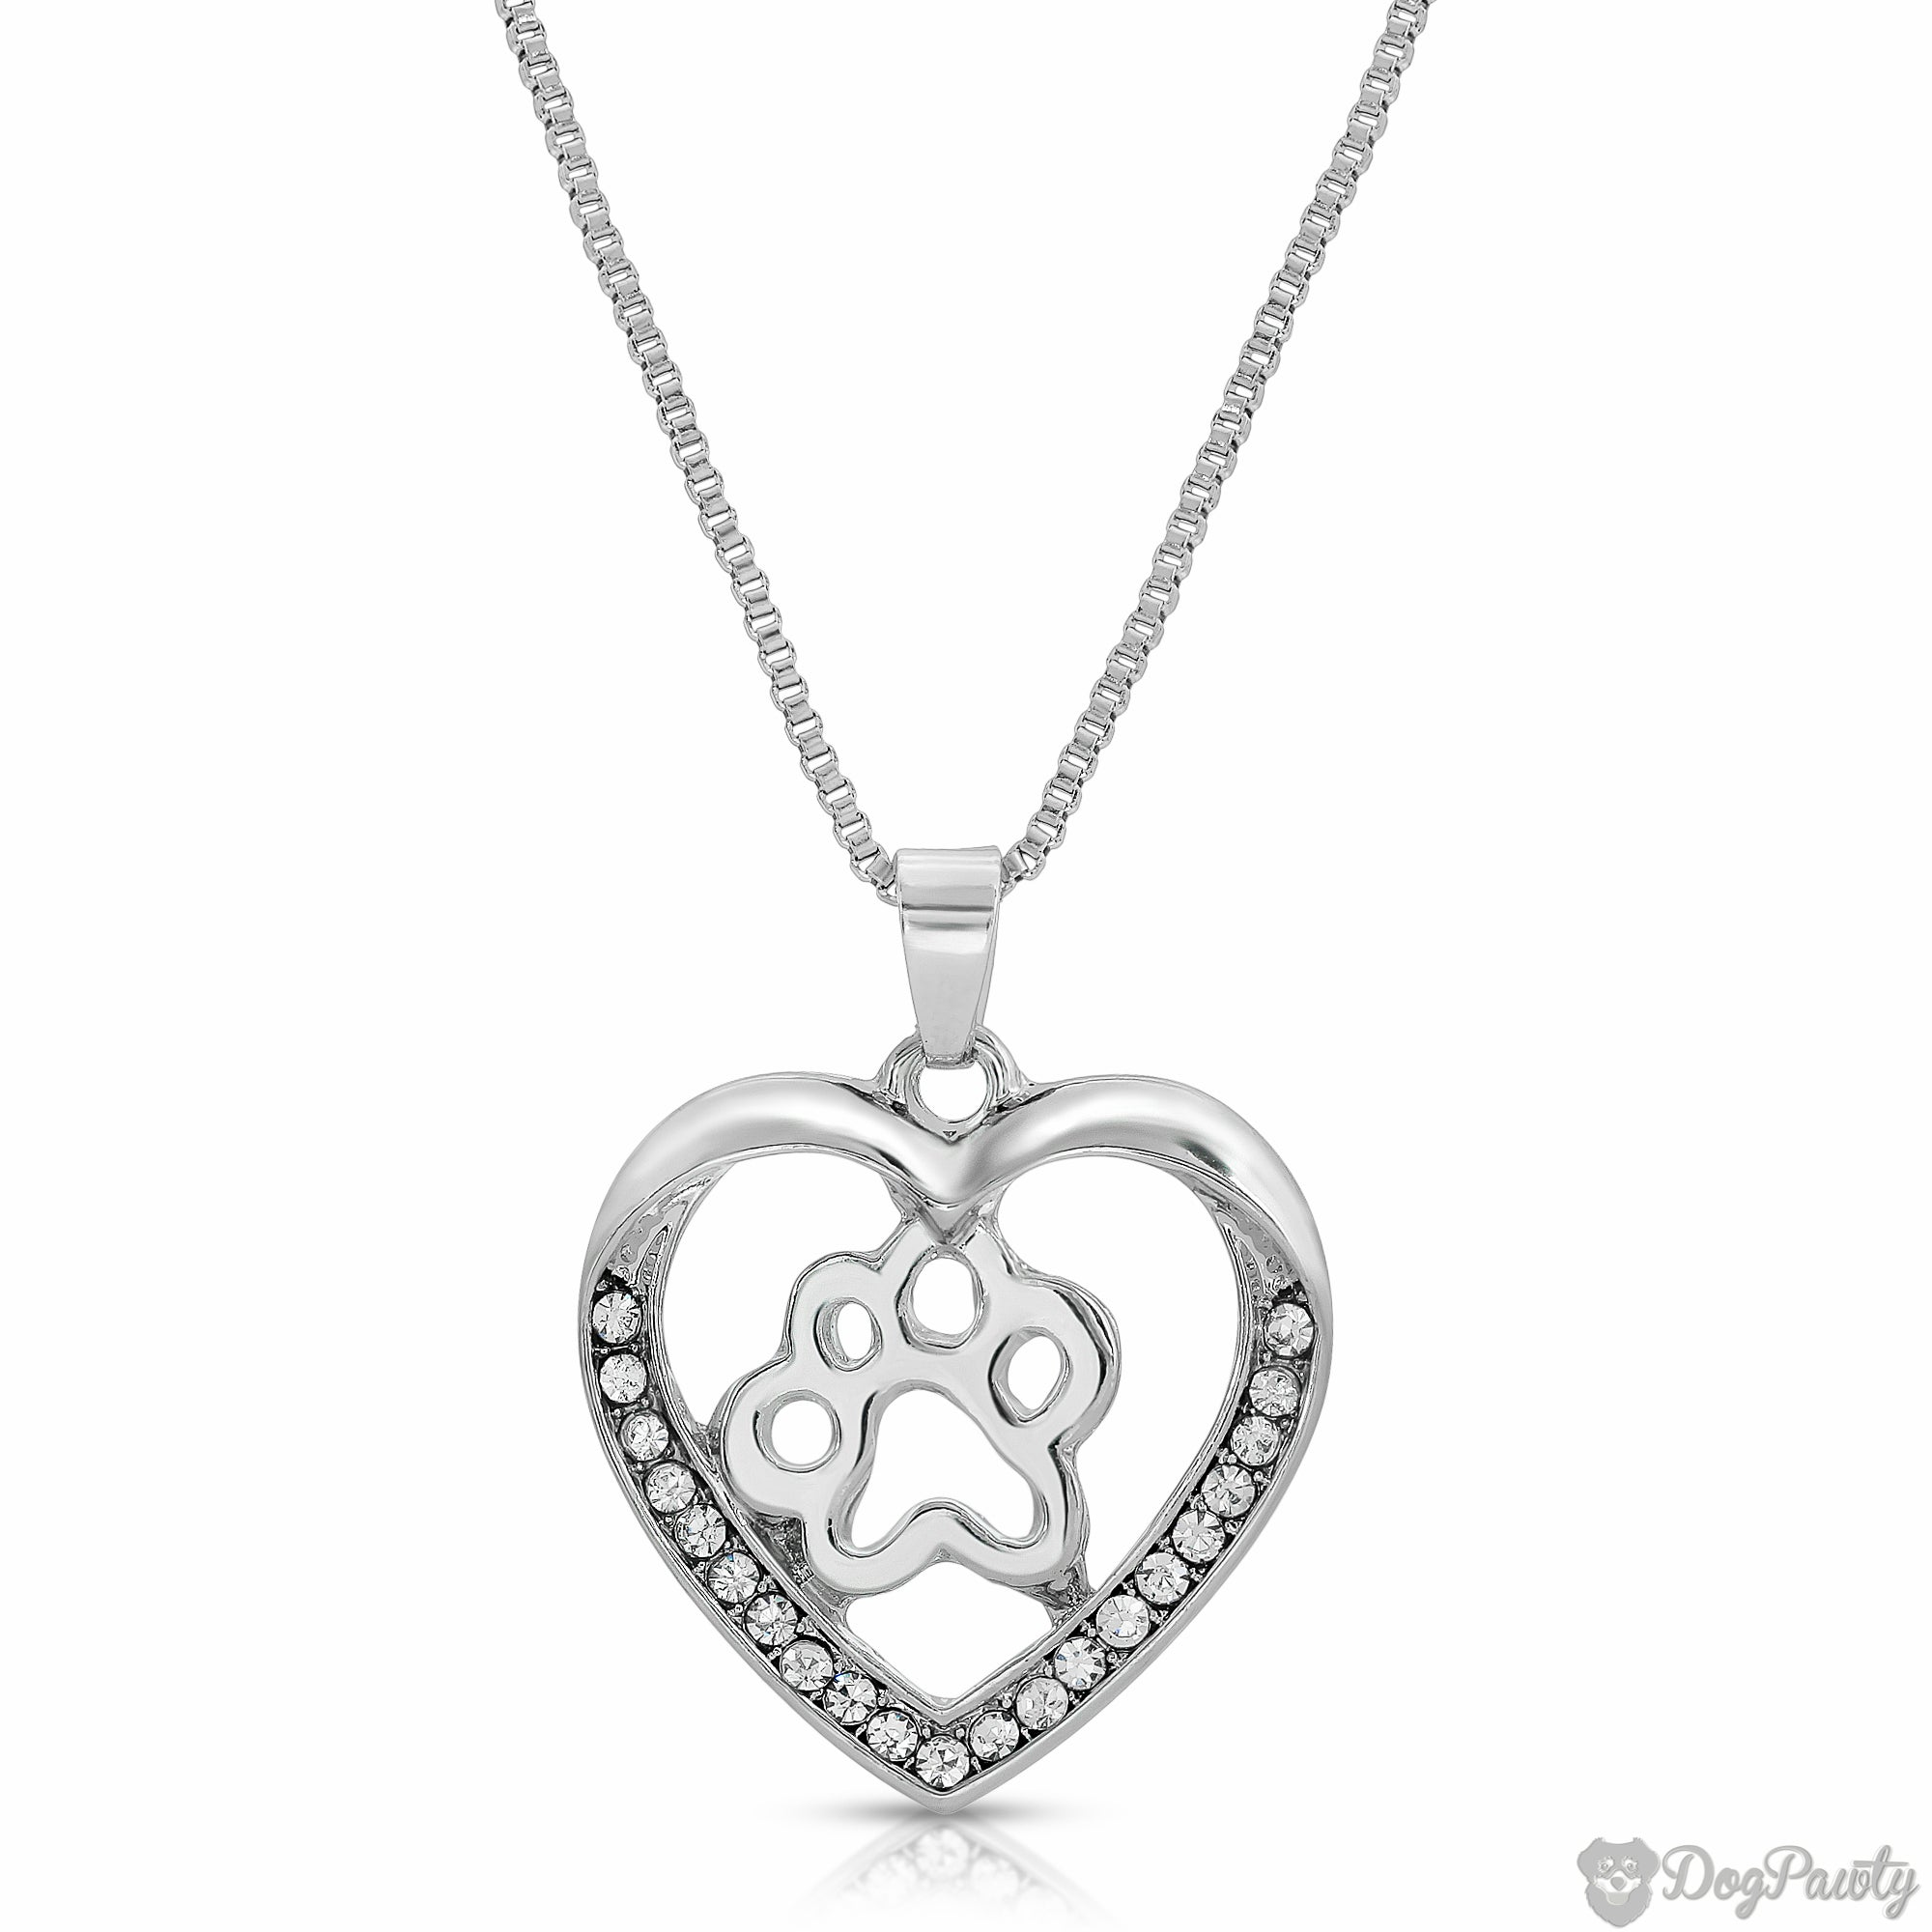 Dog Lover's Heart Necklace